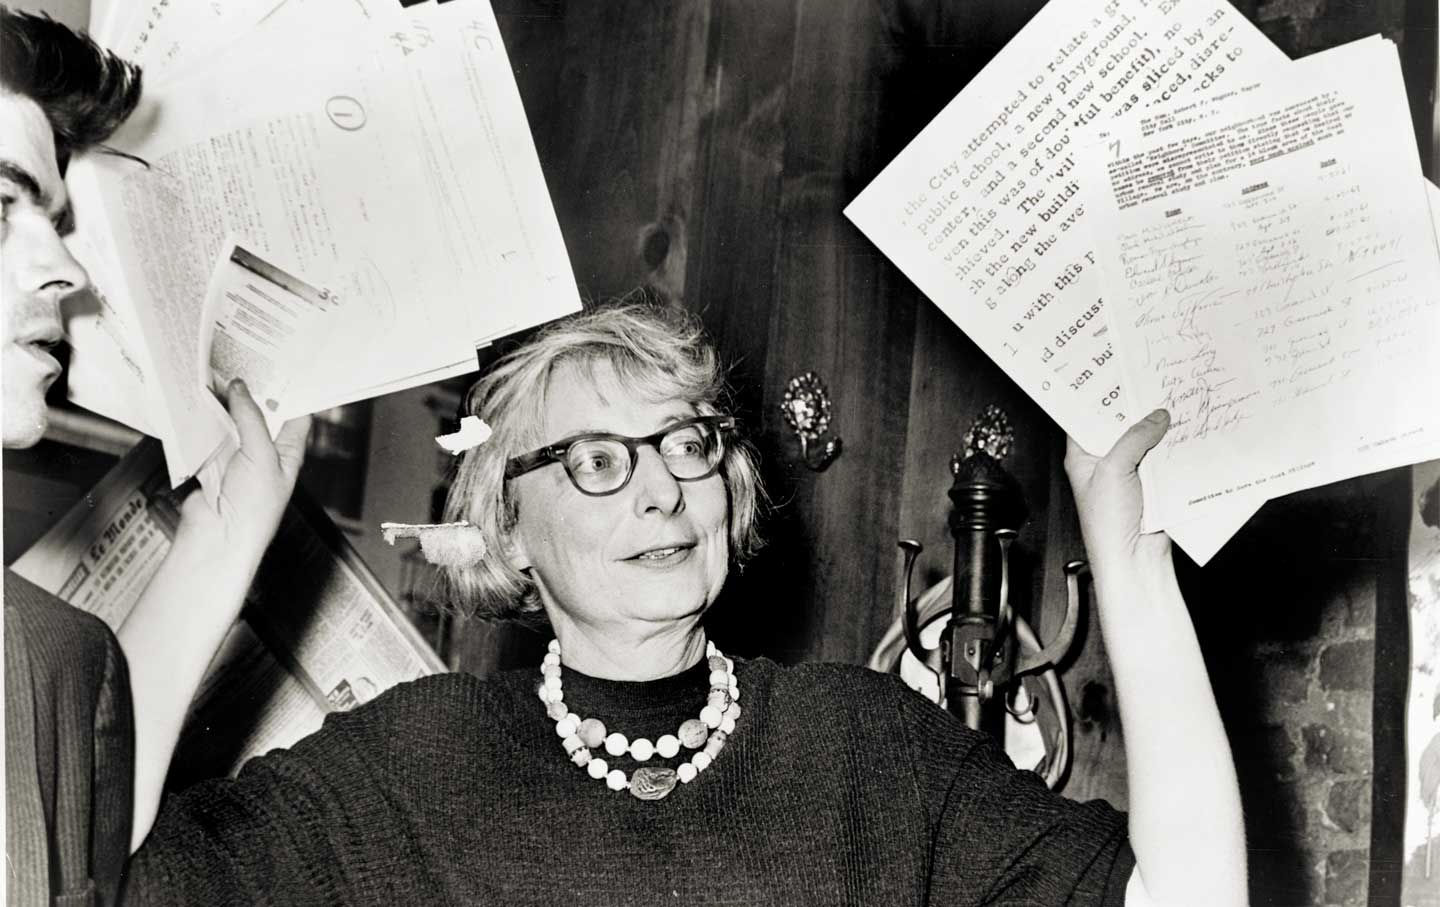 The work of activist and journalist Jane Jacobs is the focus of the documentary 'Citizen Jane.'